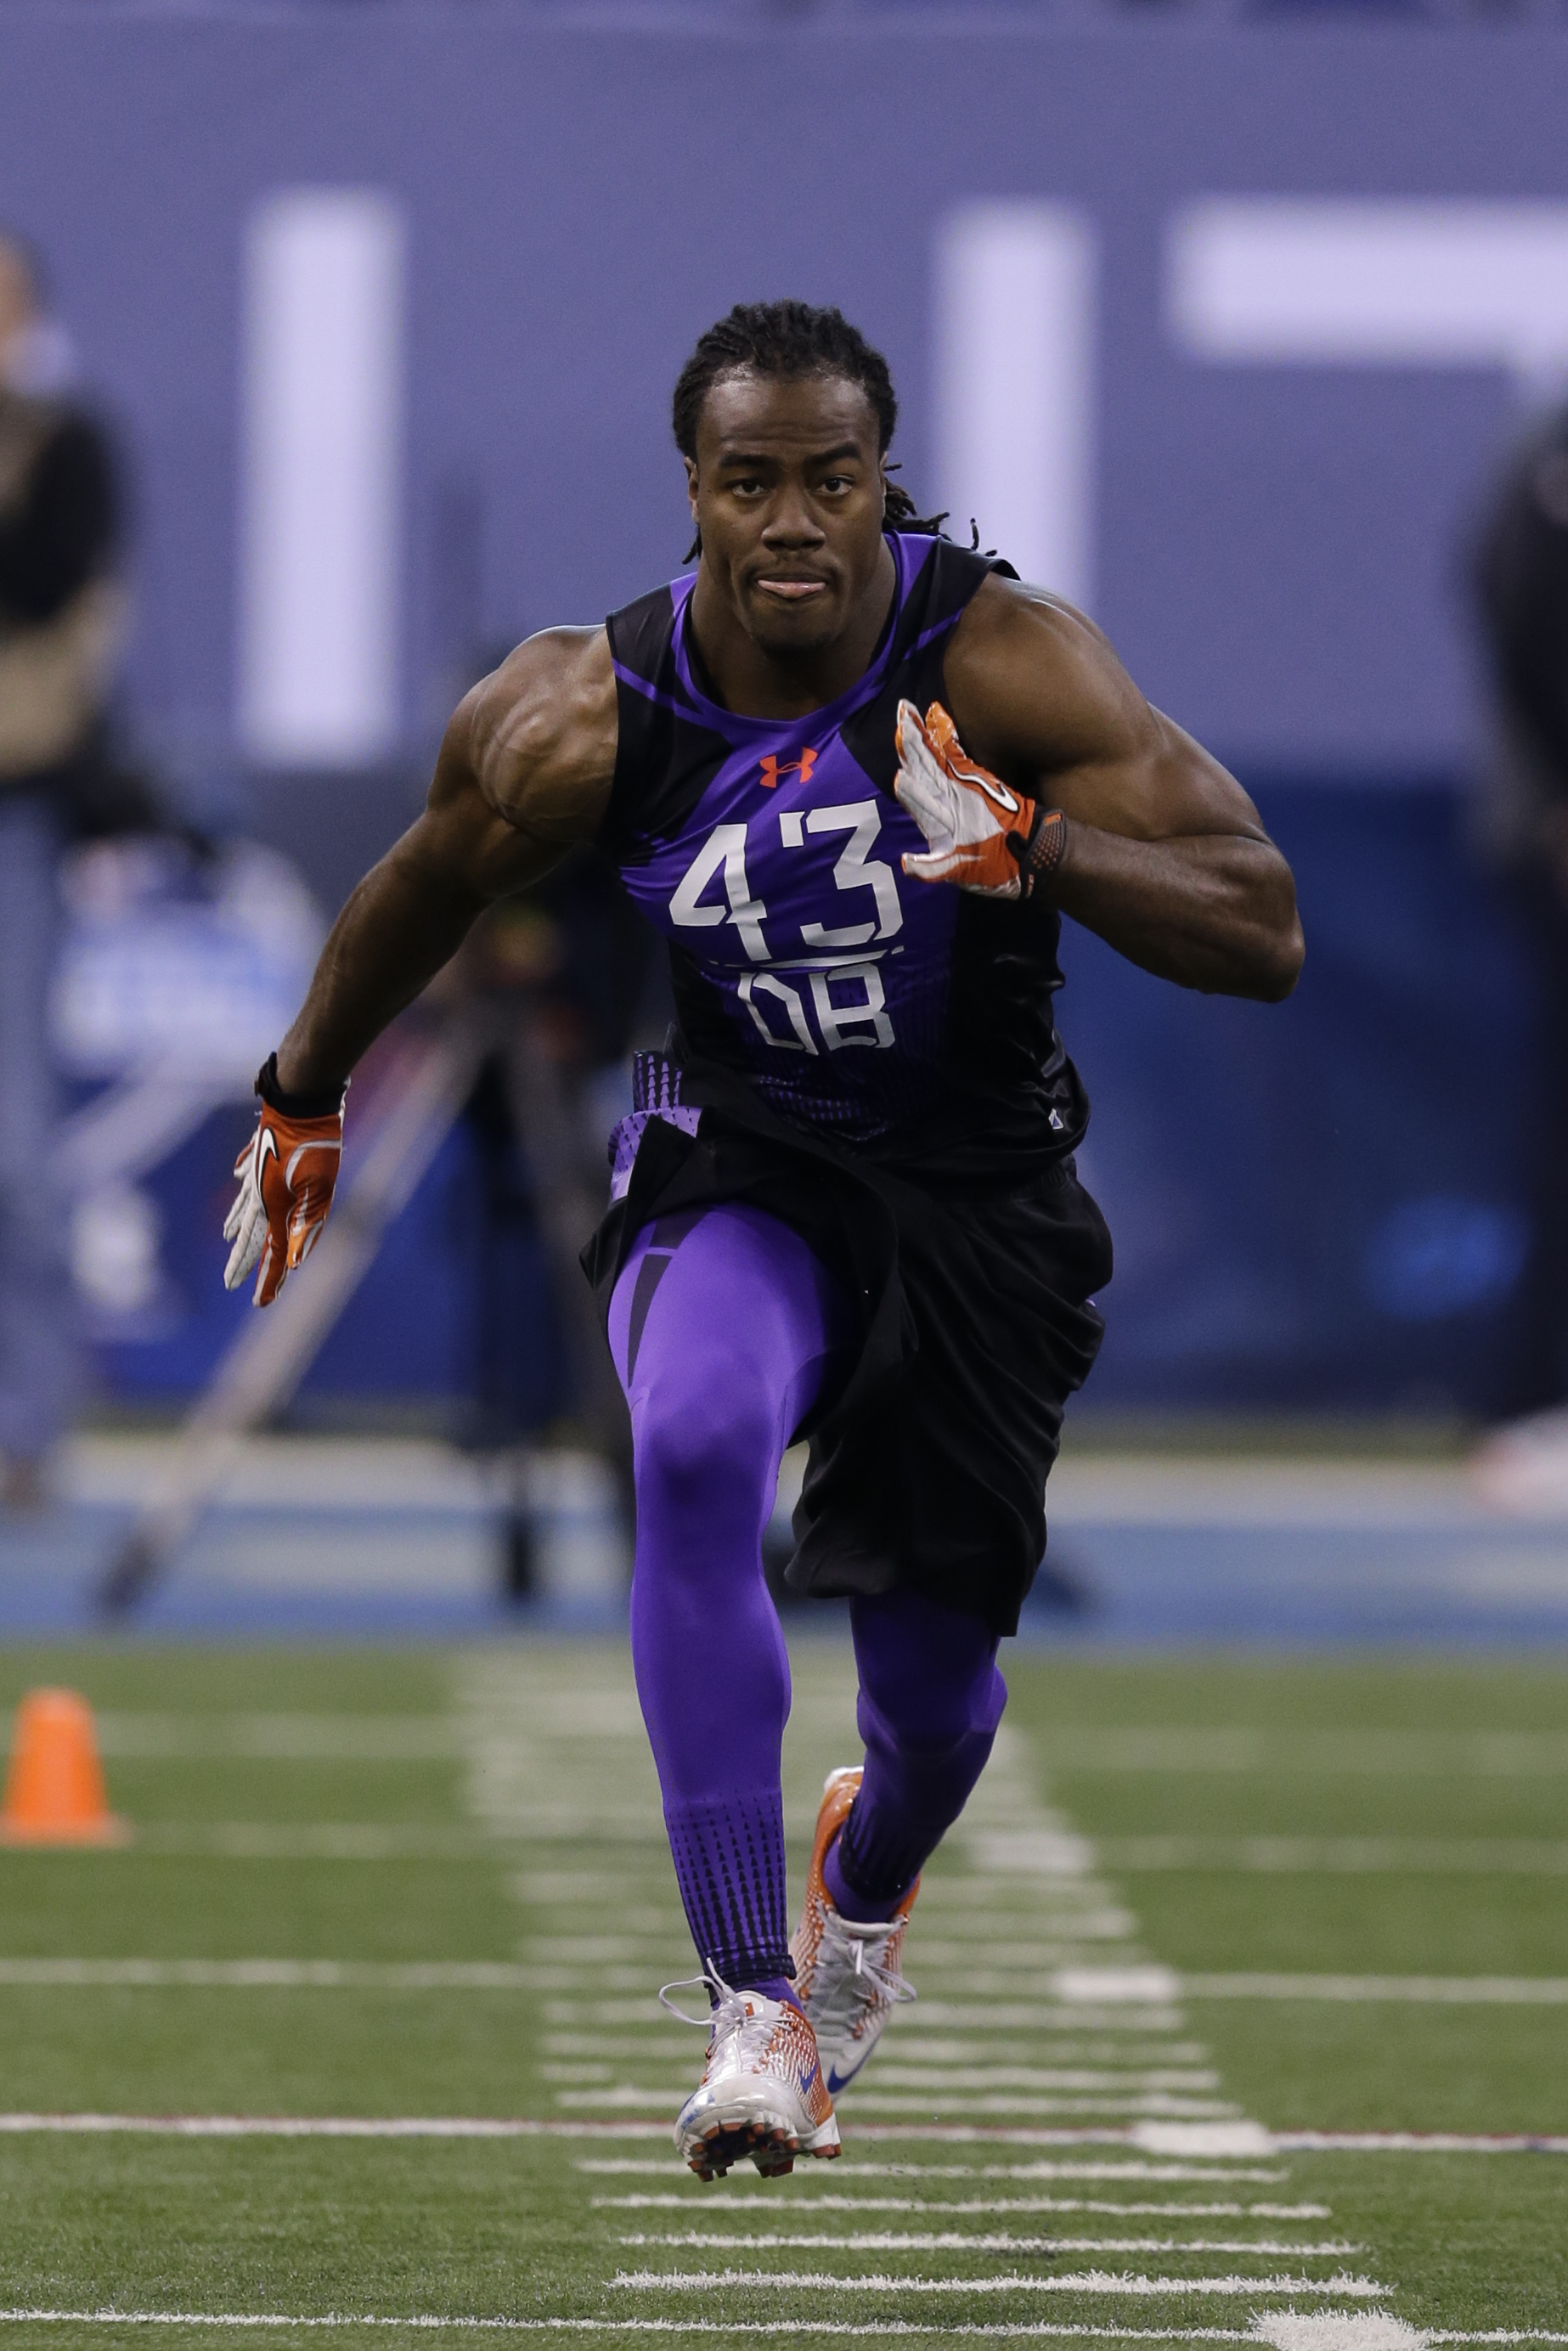 USC defensive back Josh Shaw runs a drill at the NFL football scouting combine in Indianapolis, Monday, Feb. 23, 2015. (AP Photo/Julio Cortez)